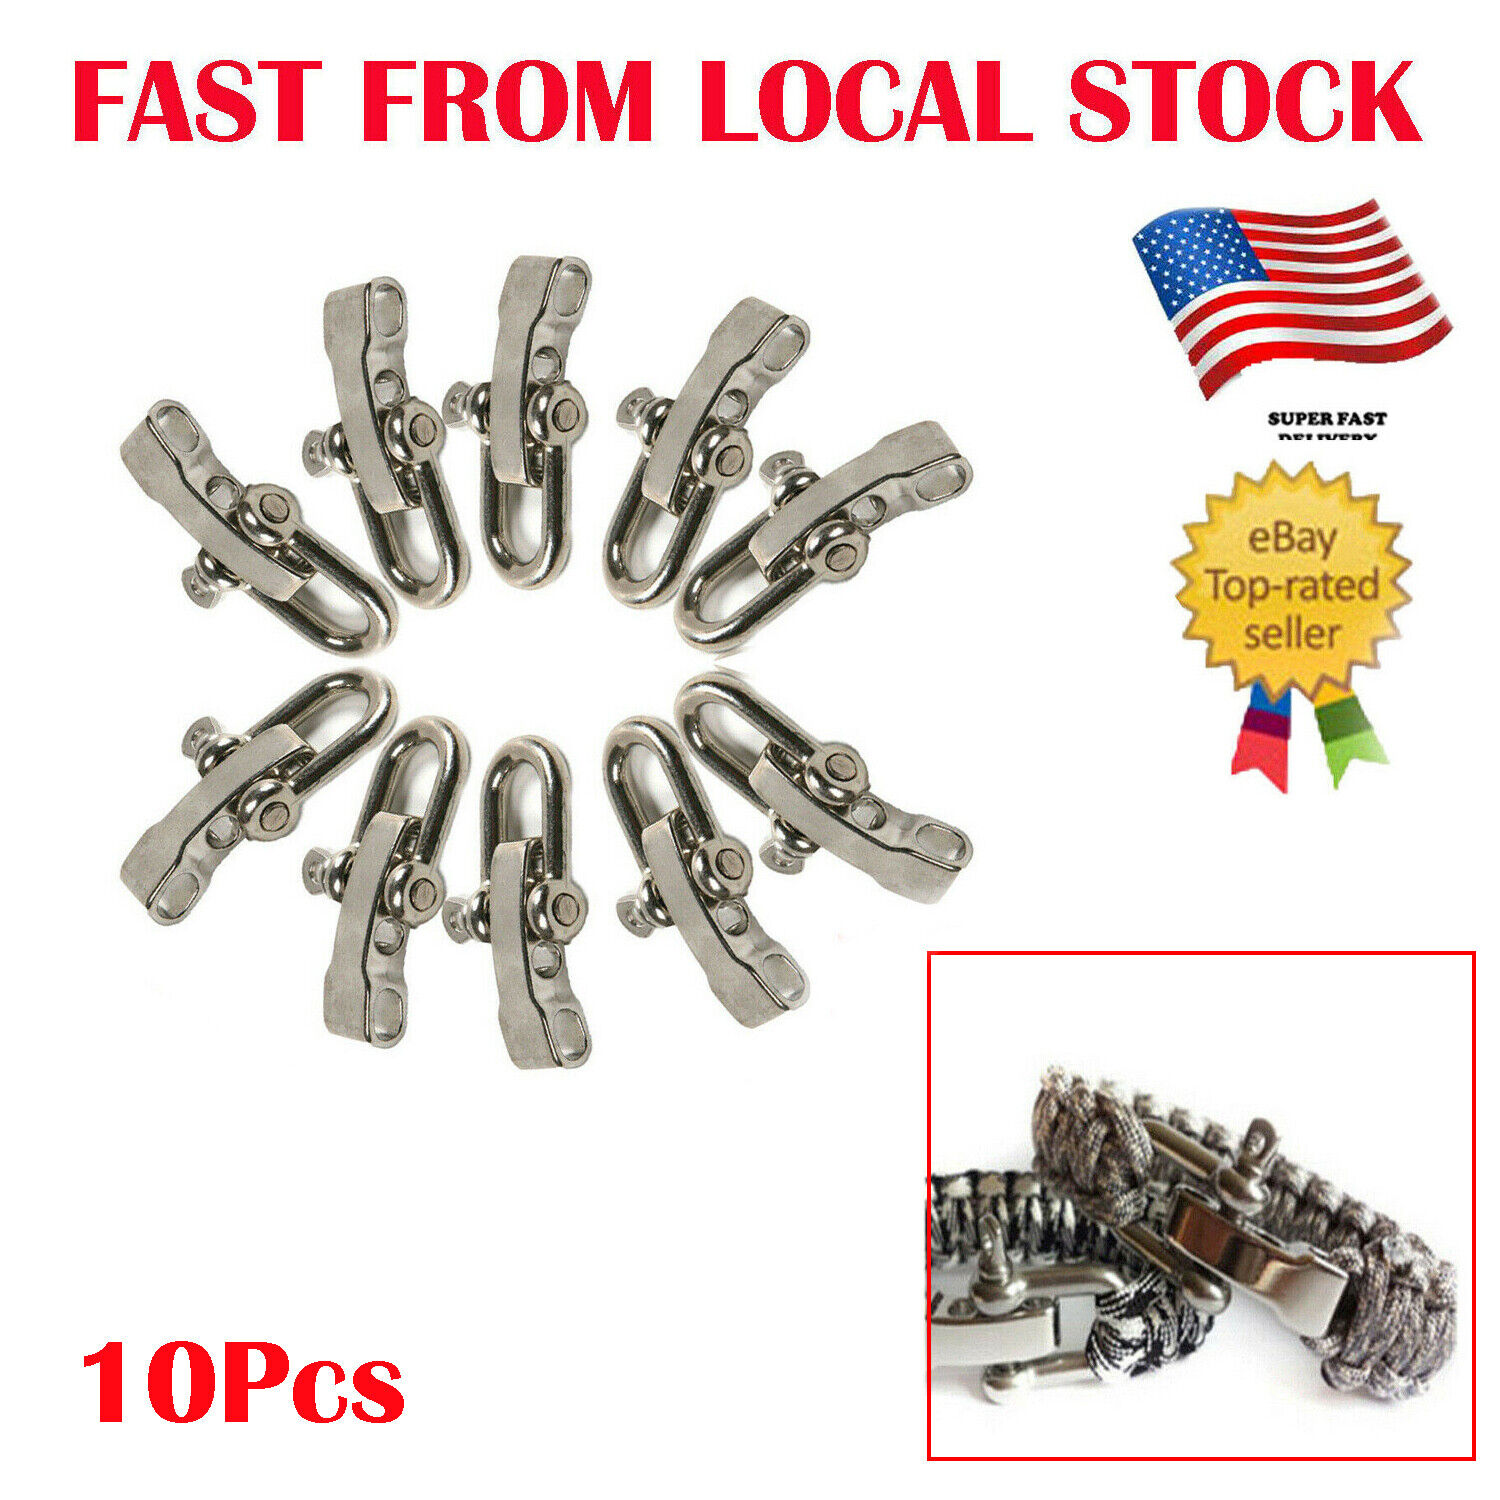 Stainless Adjustable Buckle Paracord Survival Bracelet Shackle W// Compass KY